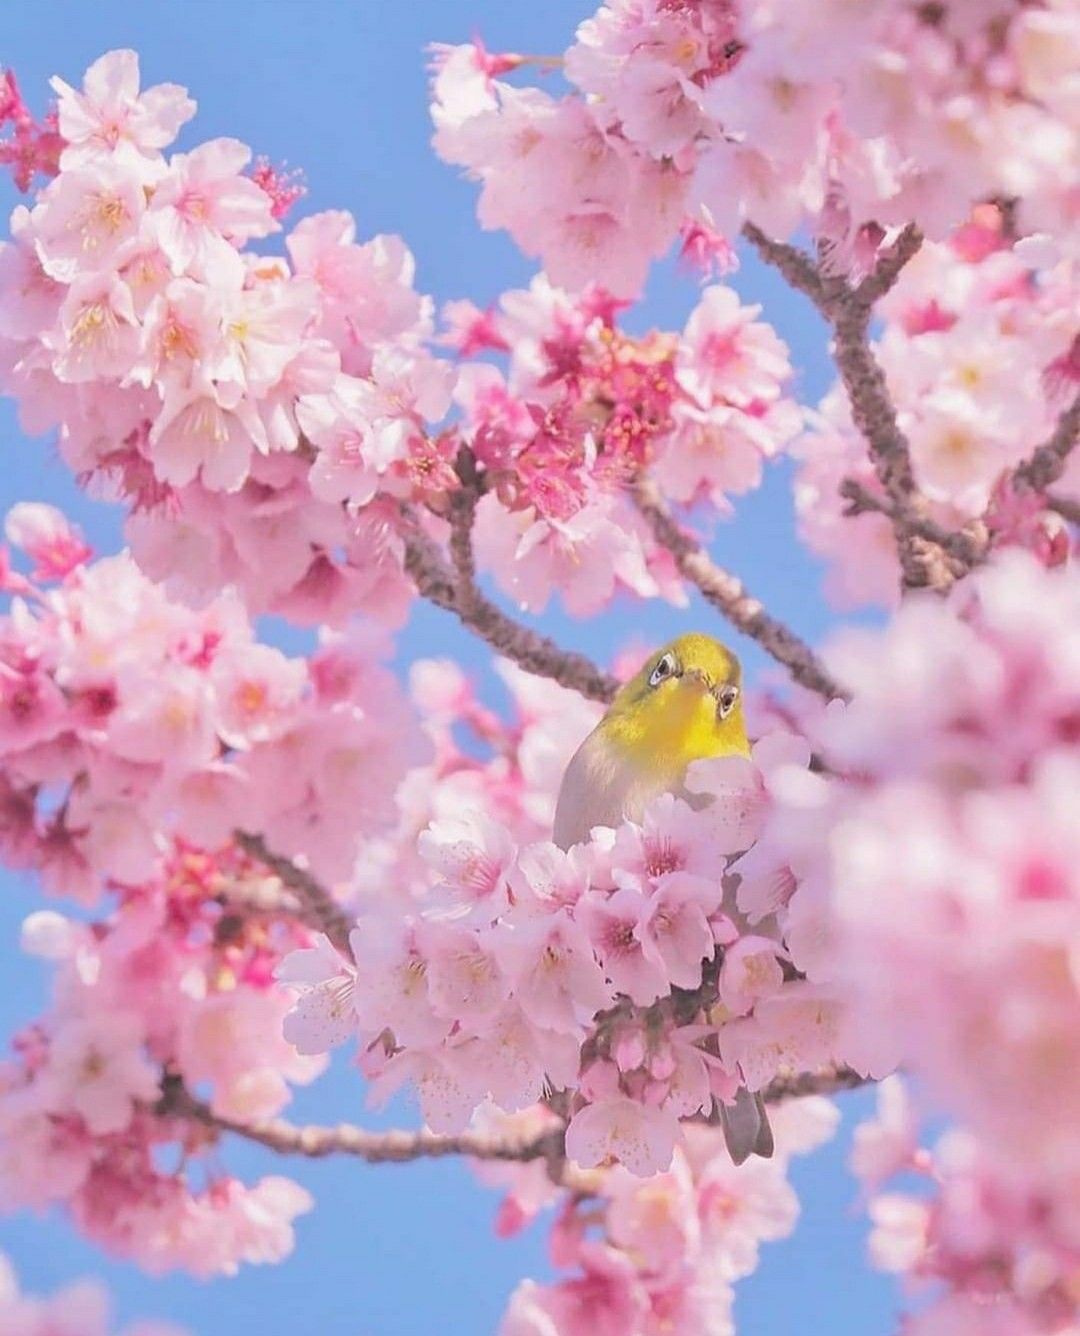 Pin By Tessa Patti On Photography Mother Nature Cherry Blossom Tree Photography Cherry Blossom Season